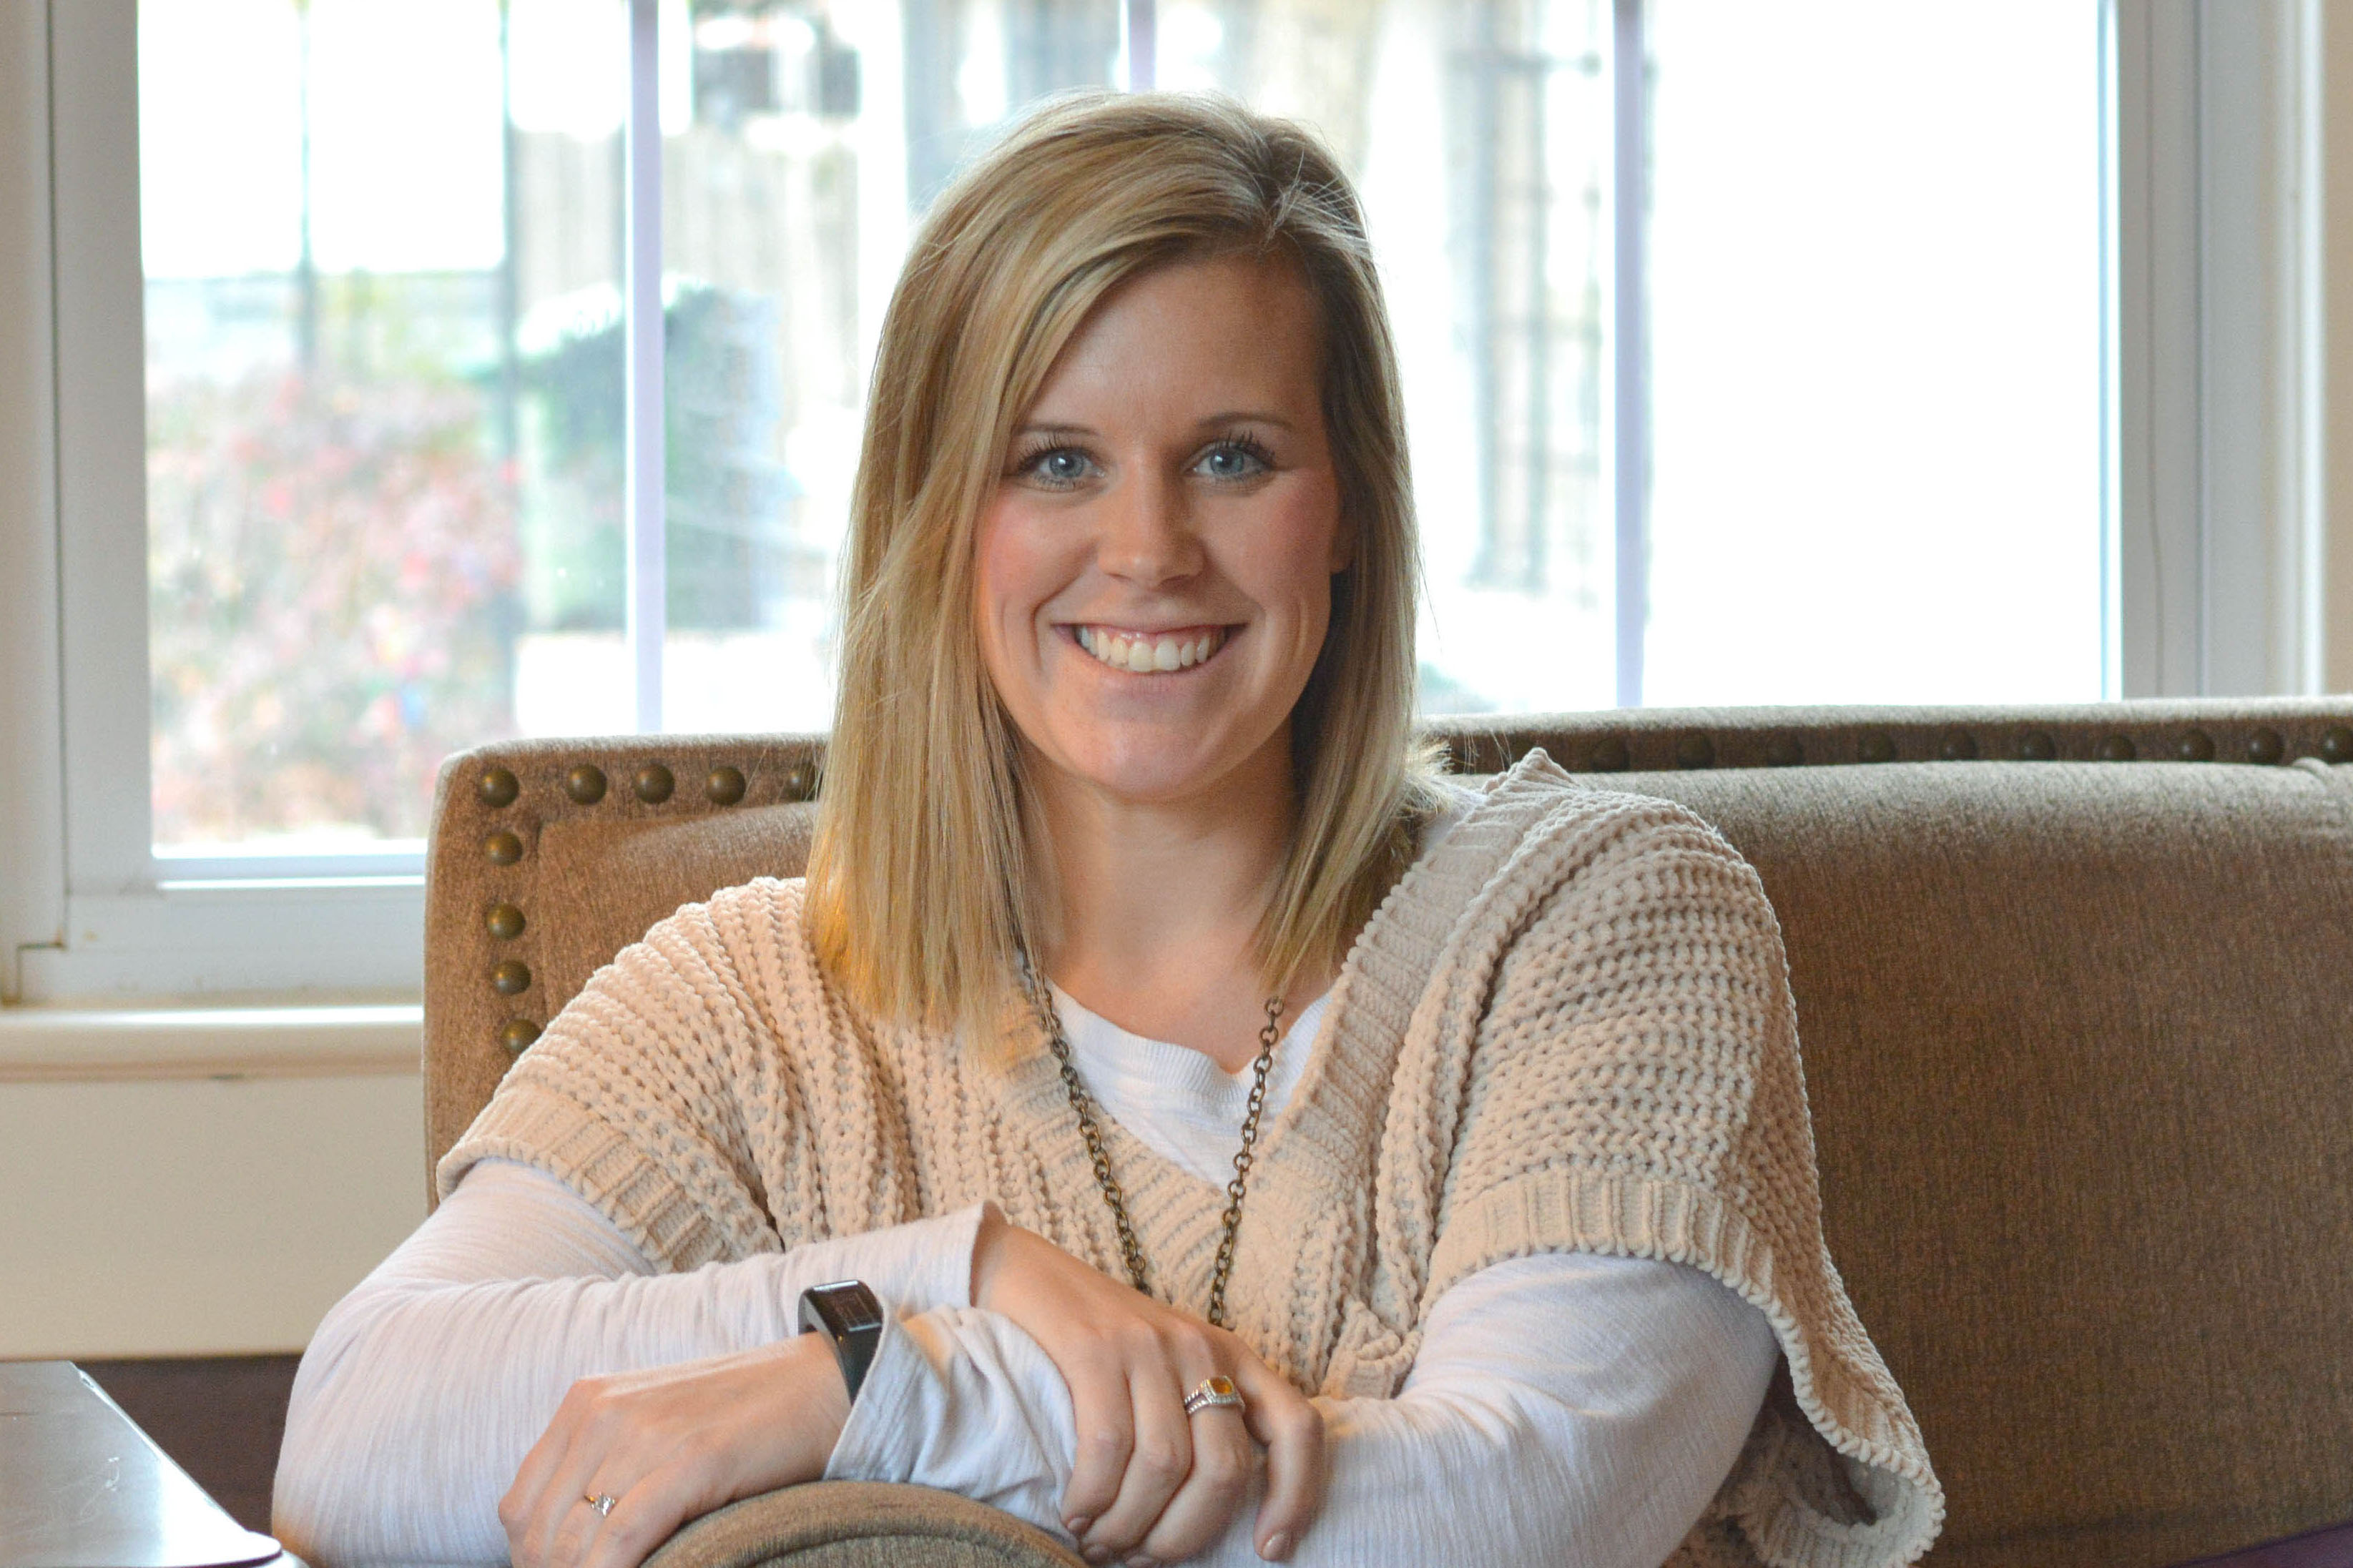 Courtney Ashley - Counselor in Rogers, AR